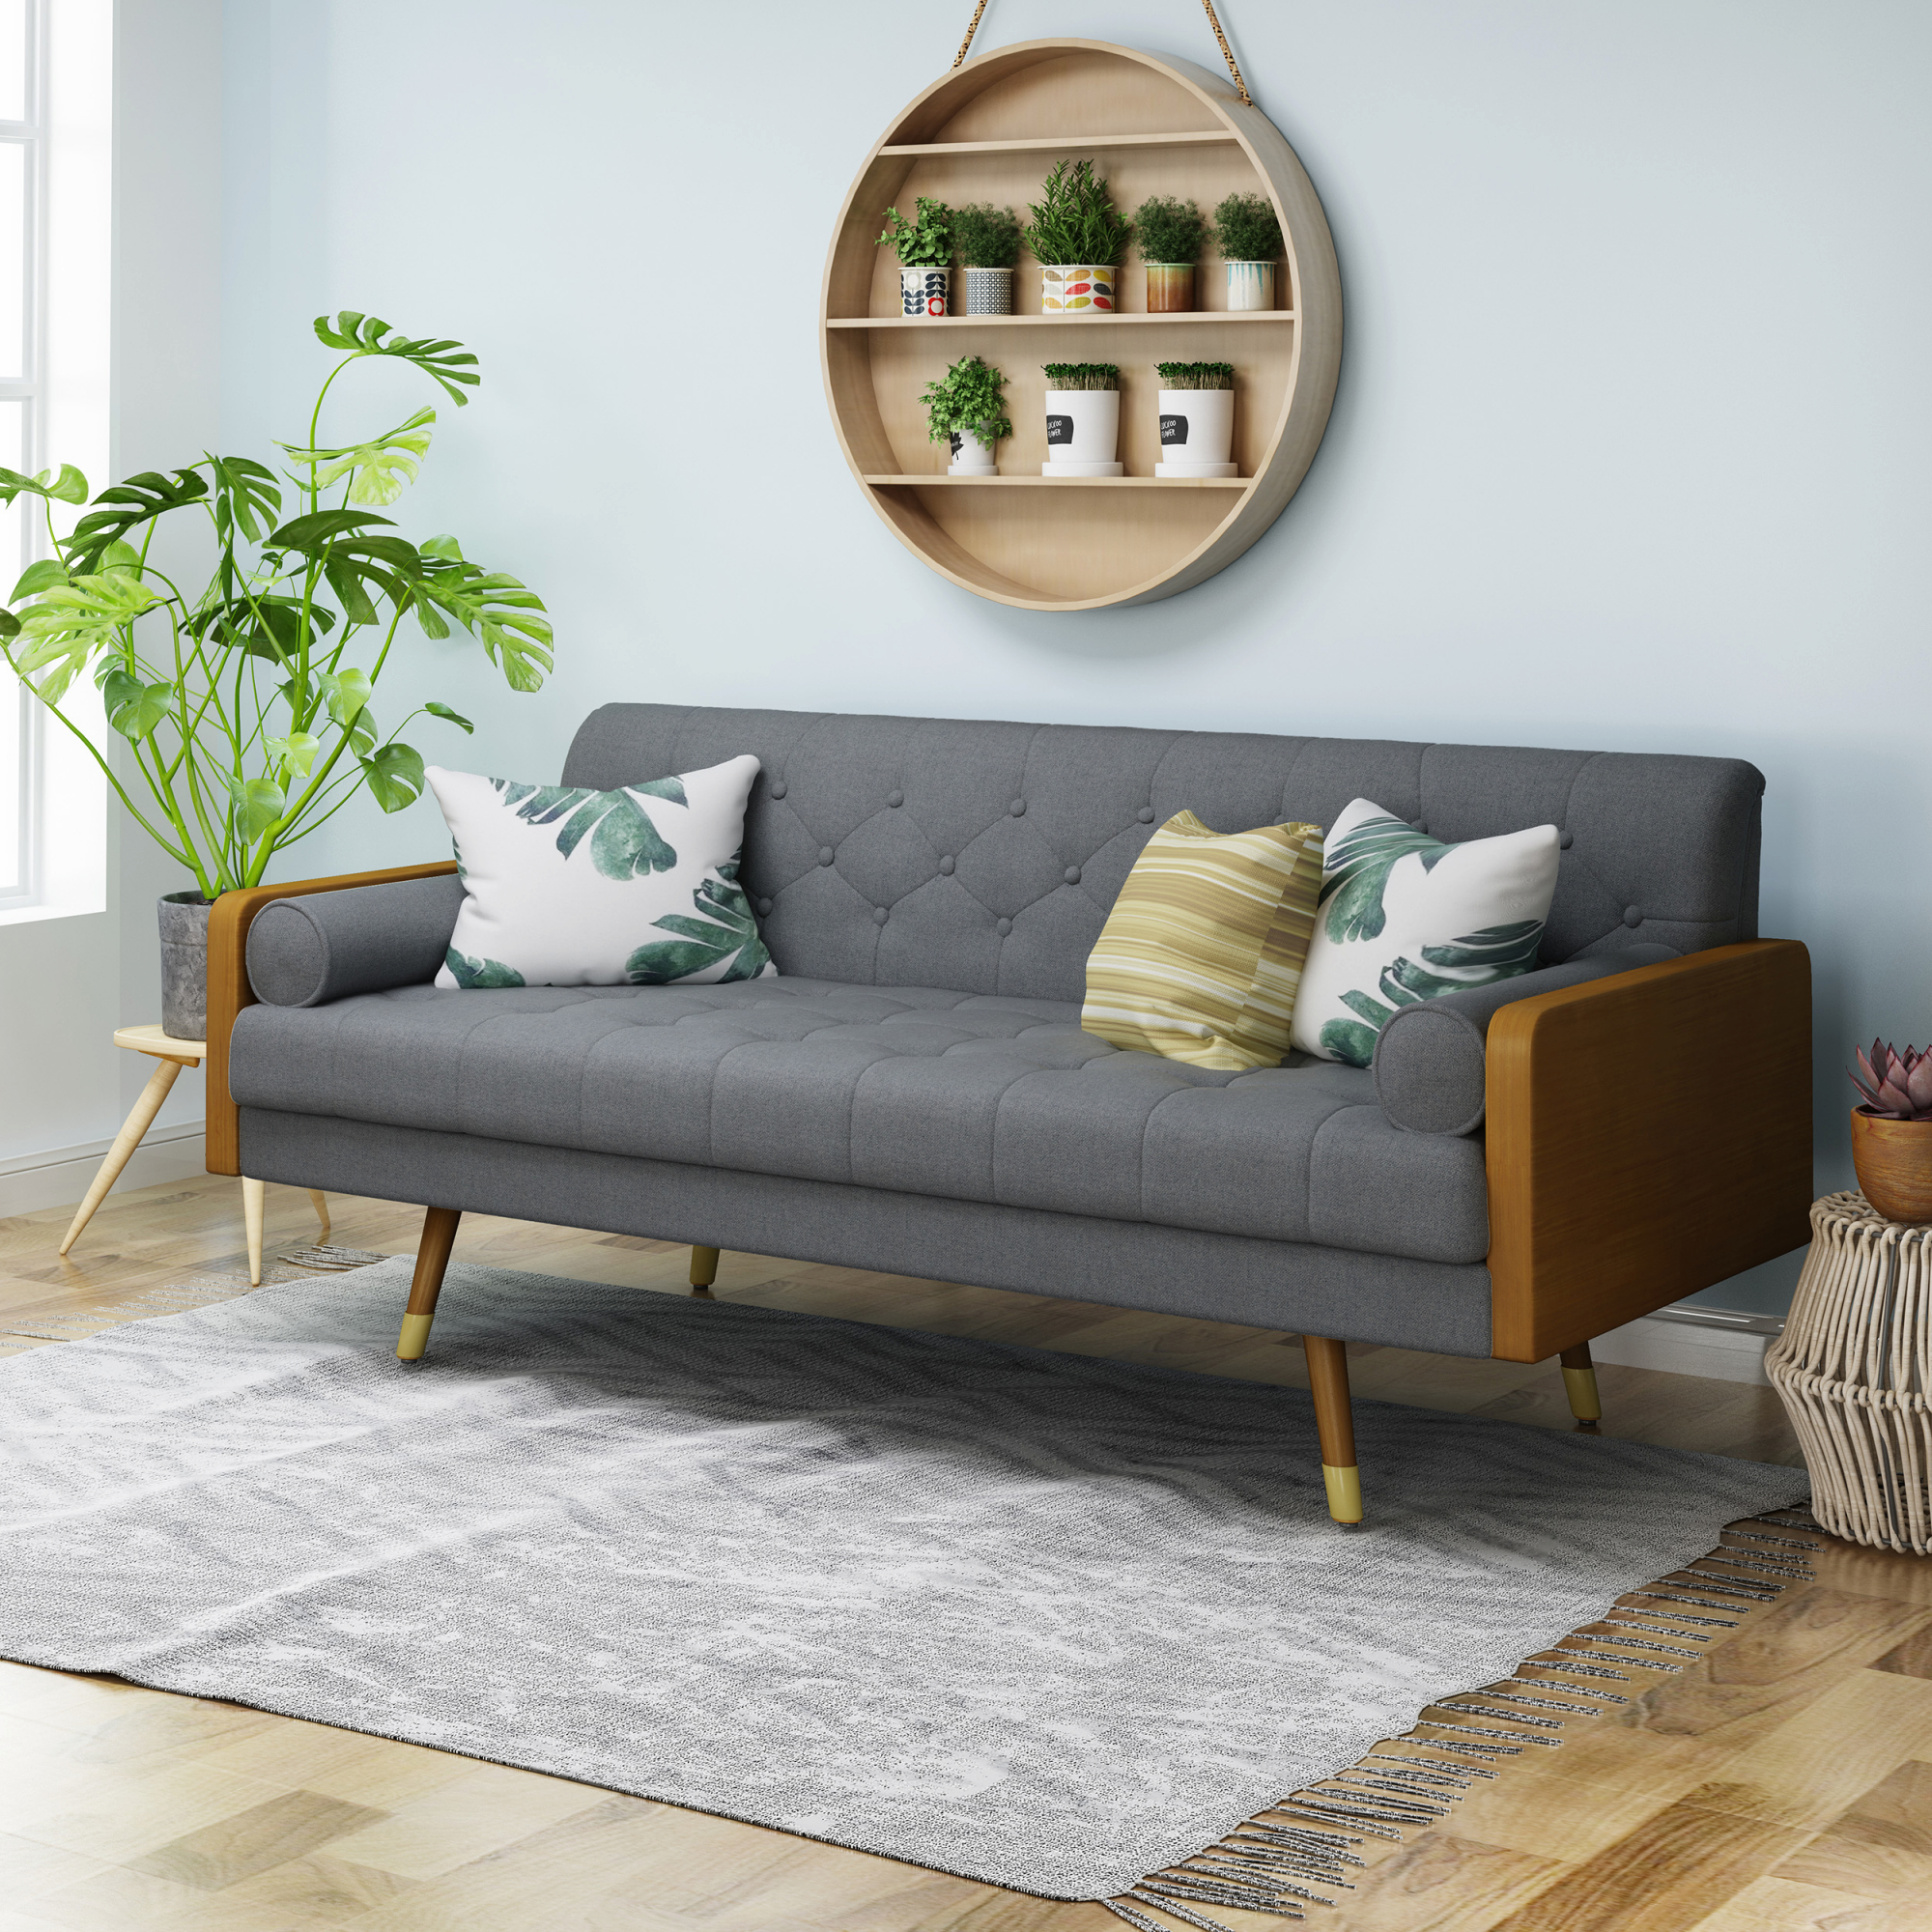 Modern Small Space Furniture | Allmodern with regard to Small Space Living Room Furniture